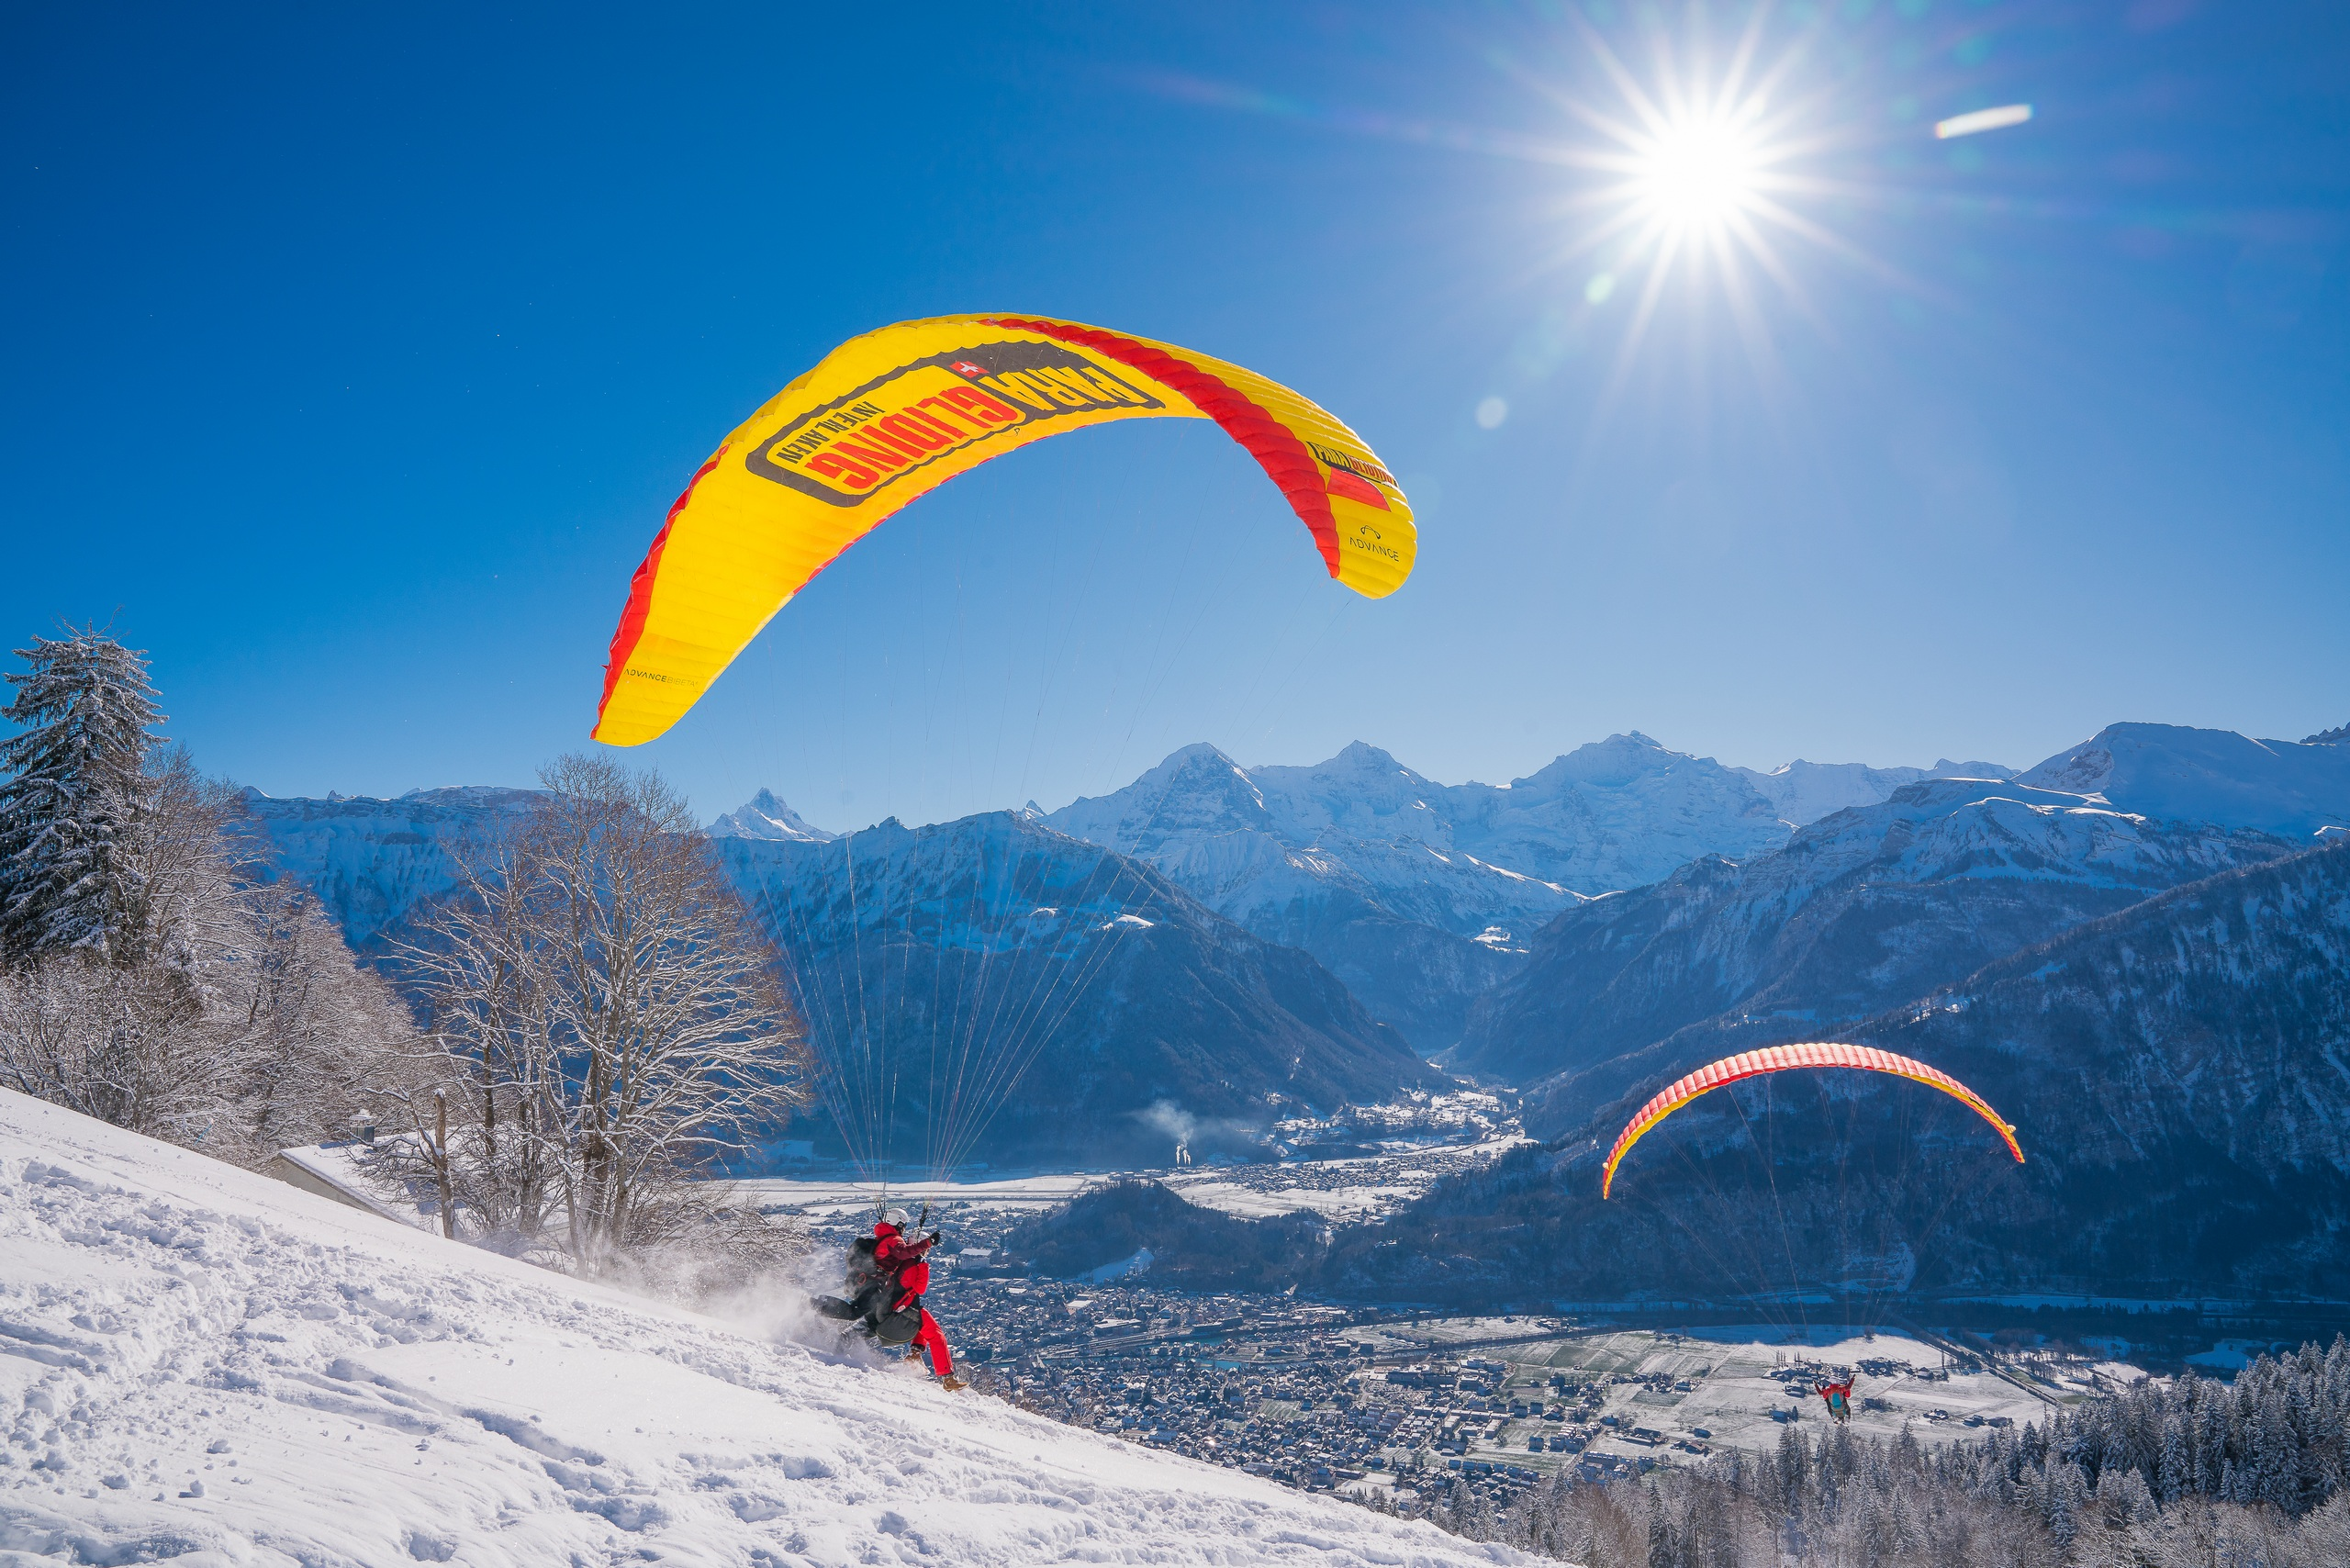 paragliding-interlaken-berge-winter-schnee